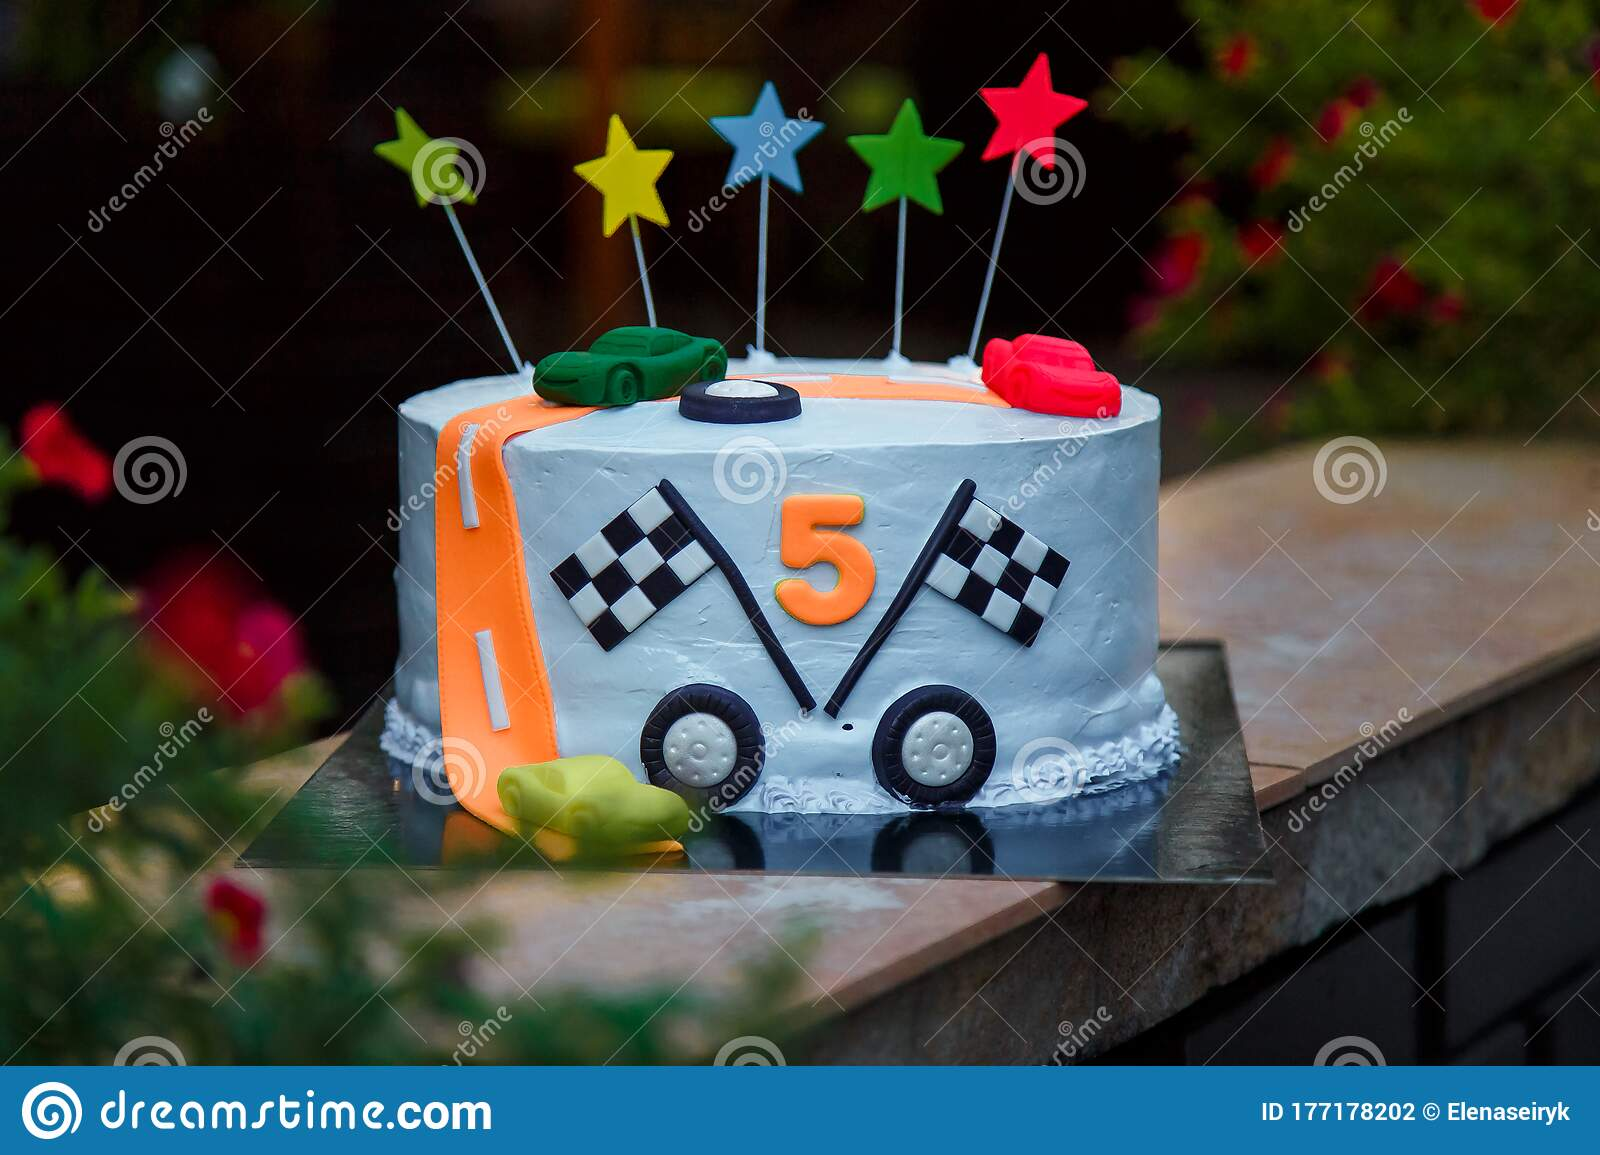 Marvelous Birthday Cake With Mastic Stars And Cars Figures For Boy Five Funny Birthday Cards Online Sheoxdamsfinfo